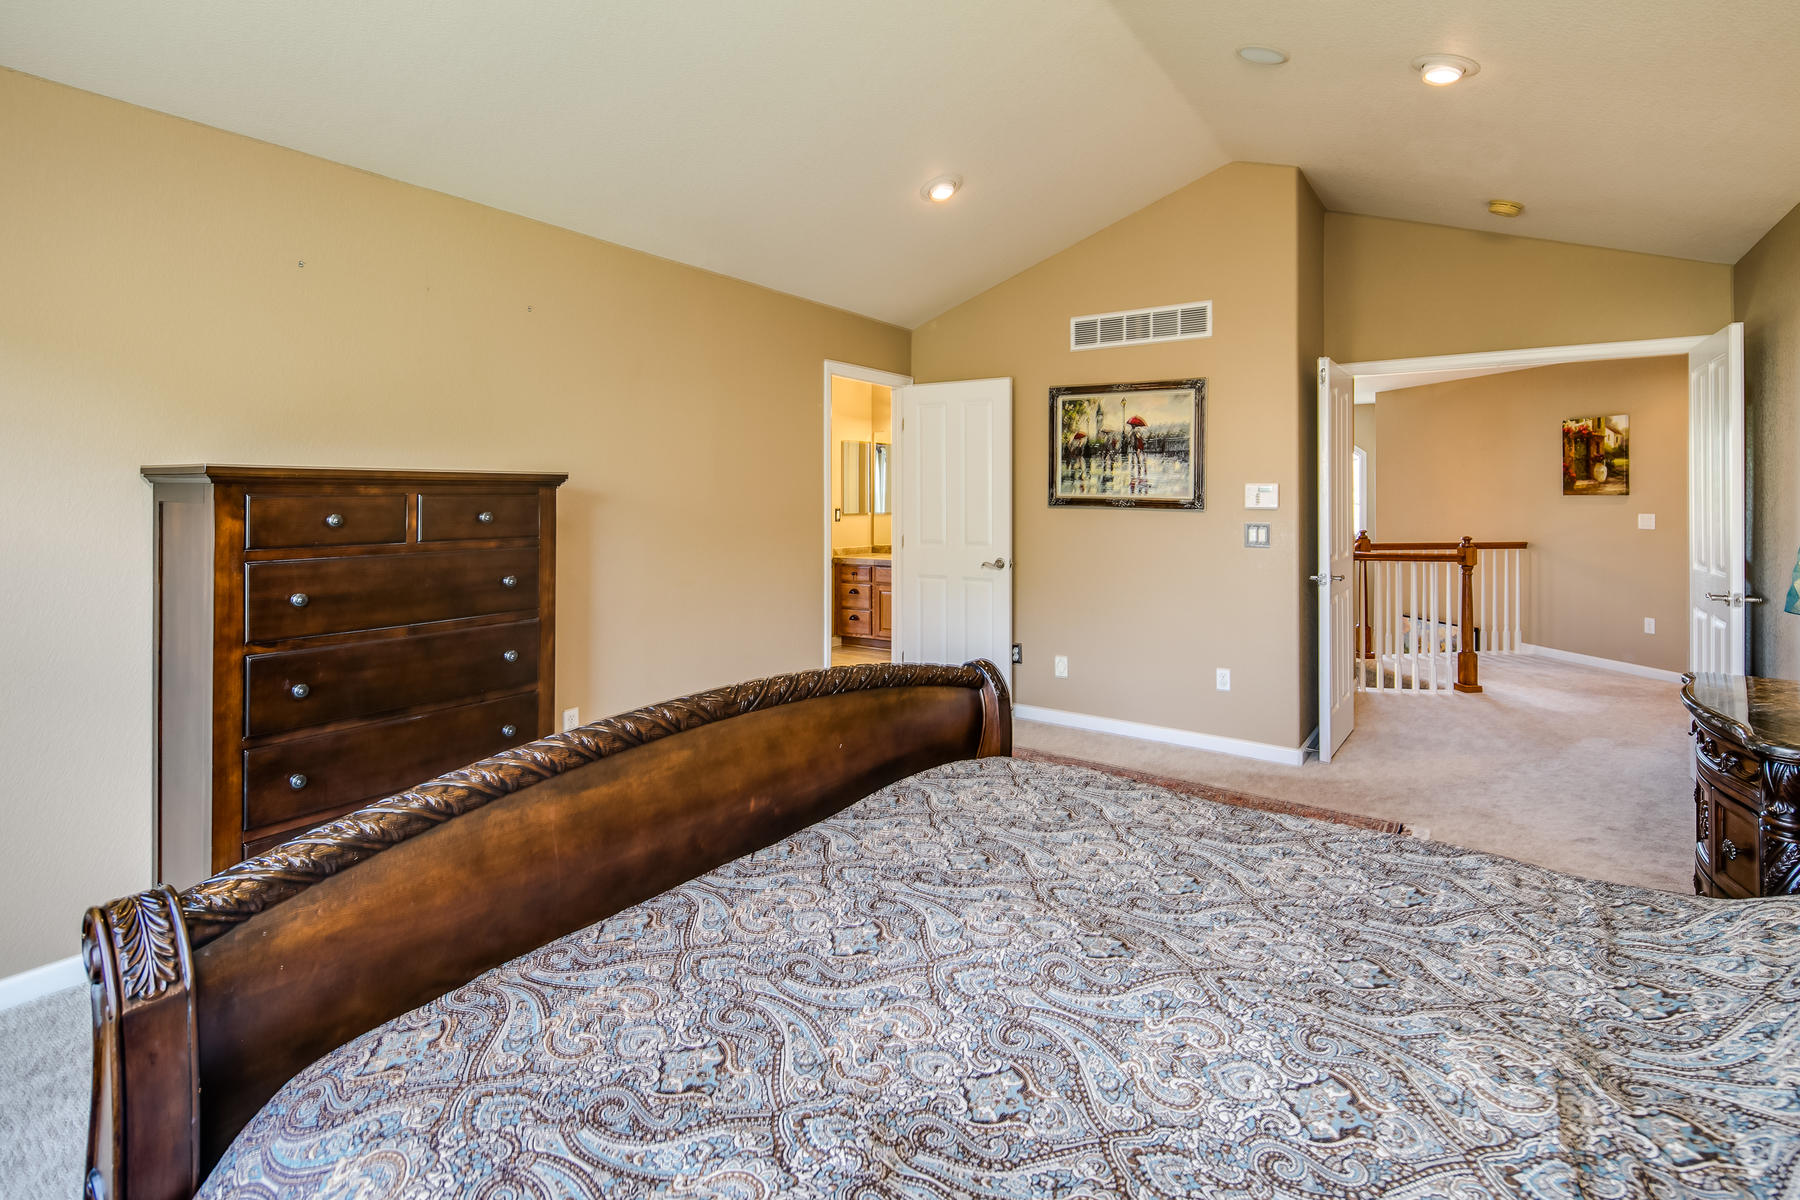 Additional photo for property listing at Beautifully maintained home in Piney Creek Village. 16856 E Lake Ave Centennial, Colorado 80016 United States